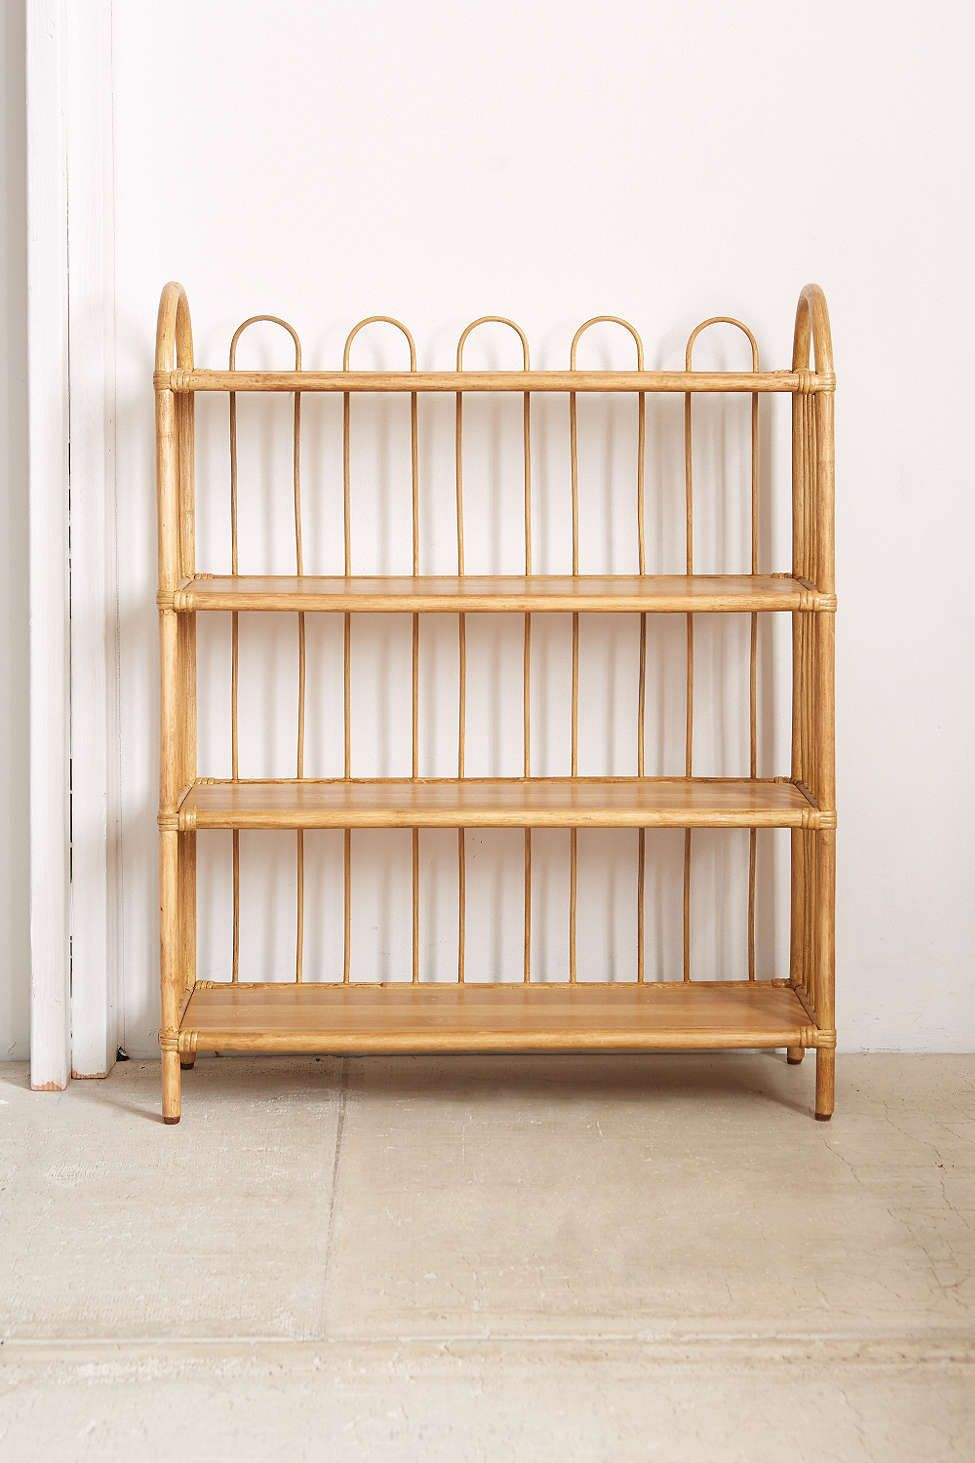 for twin find cane headboards king beds full artistic rattan and luxury sofa size good of high white value single queen bedhead wooden bookcase bookcases headboard wicker sale vwho